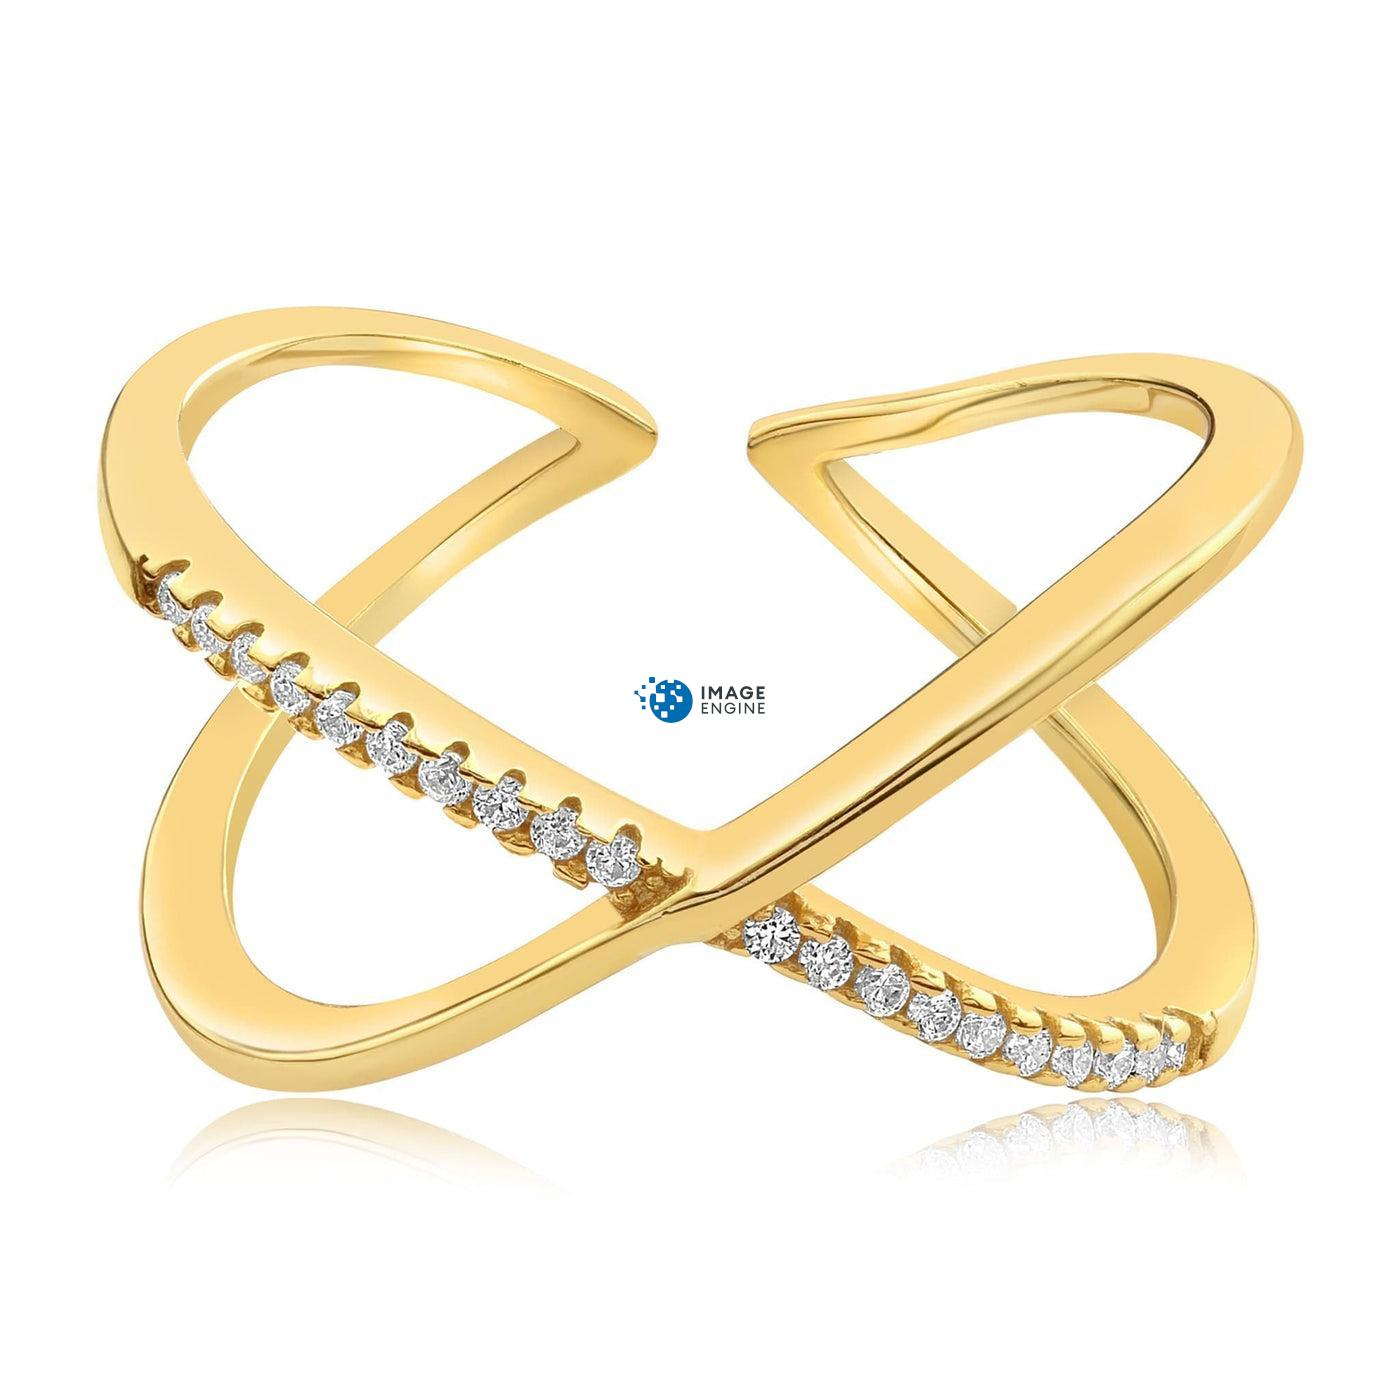 Nadia X Infinity Ring - Front View Facing Down - 18K Yellow Gold Vermeil